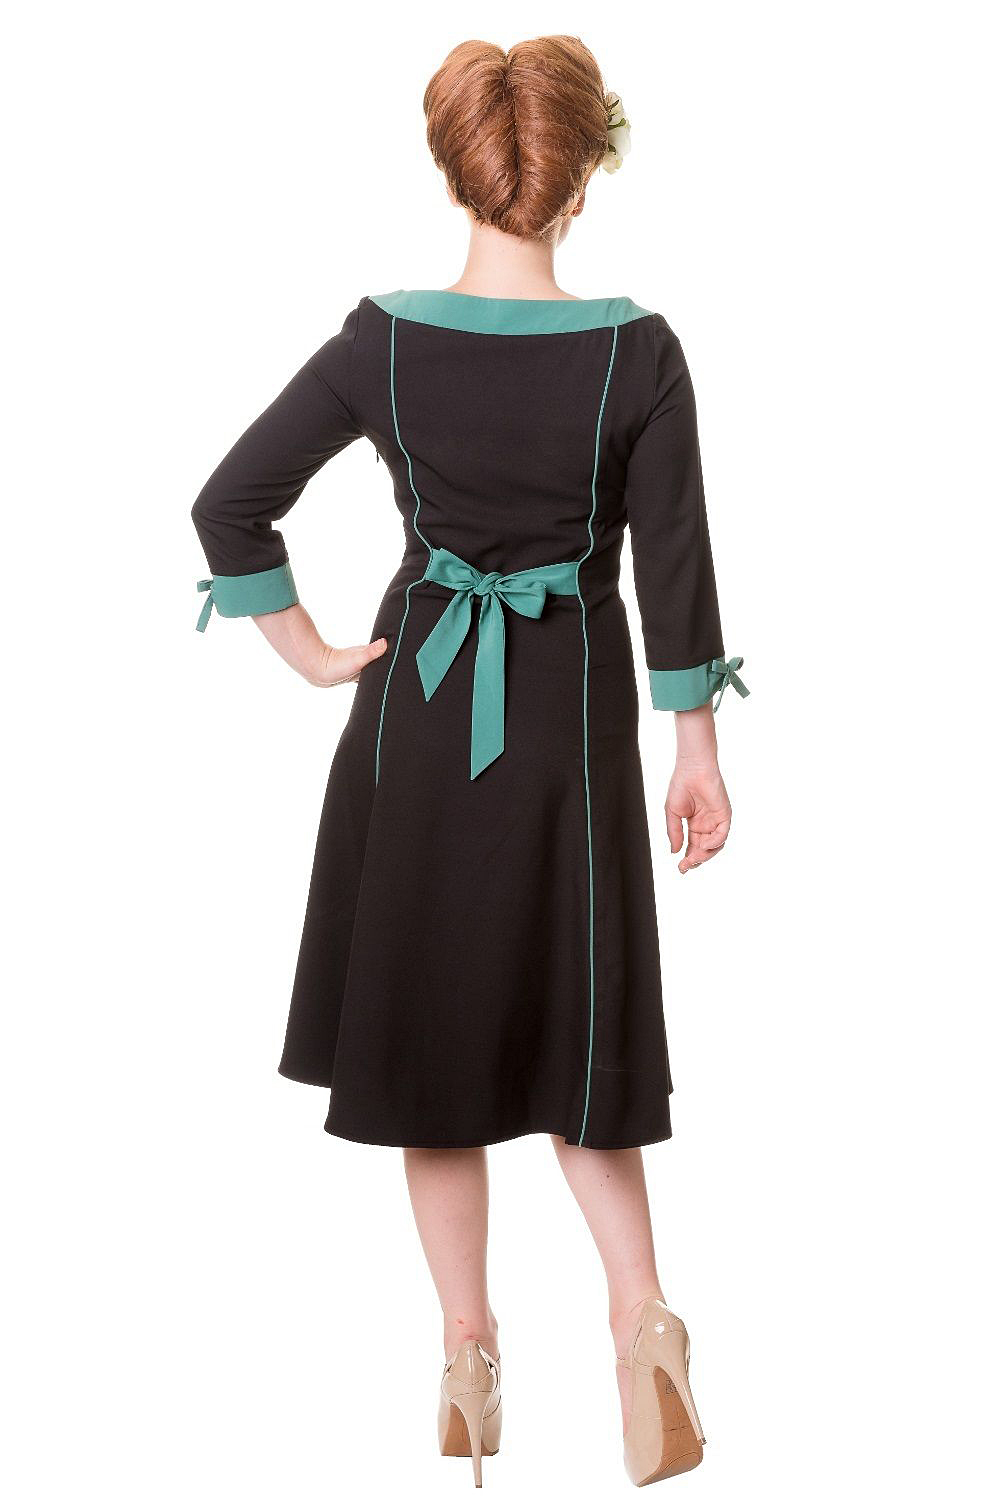 Black Green Pinup Rockabilly Vintage 50s Style Flared Party Dress